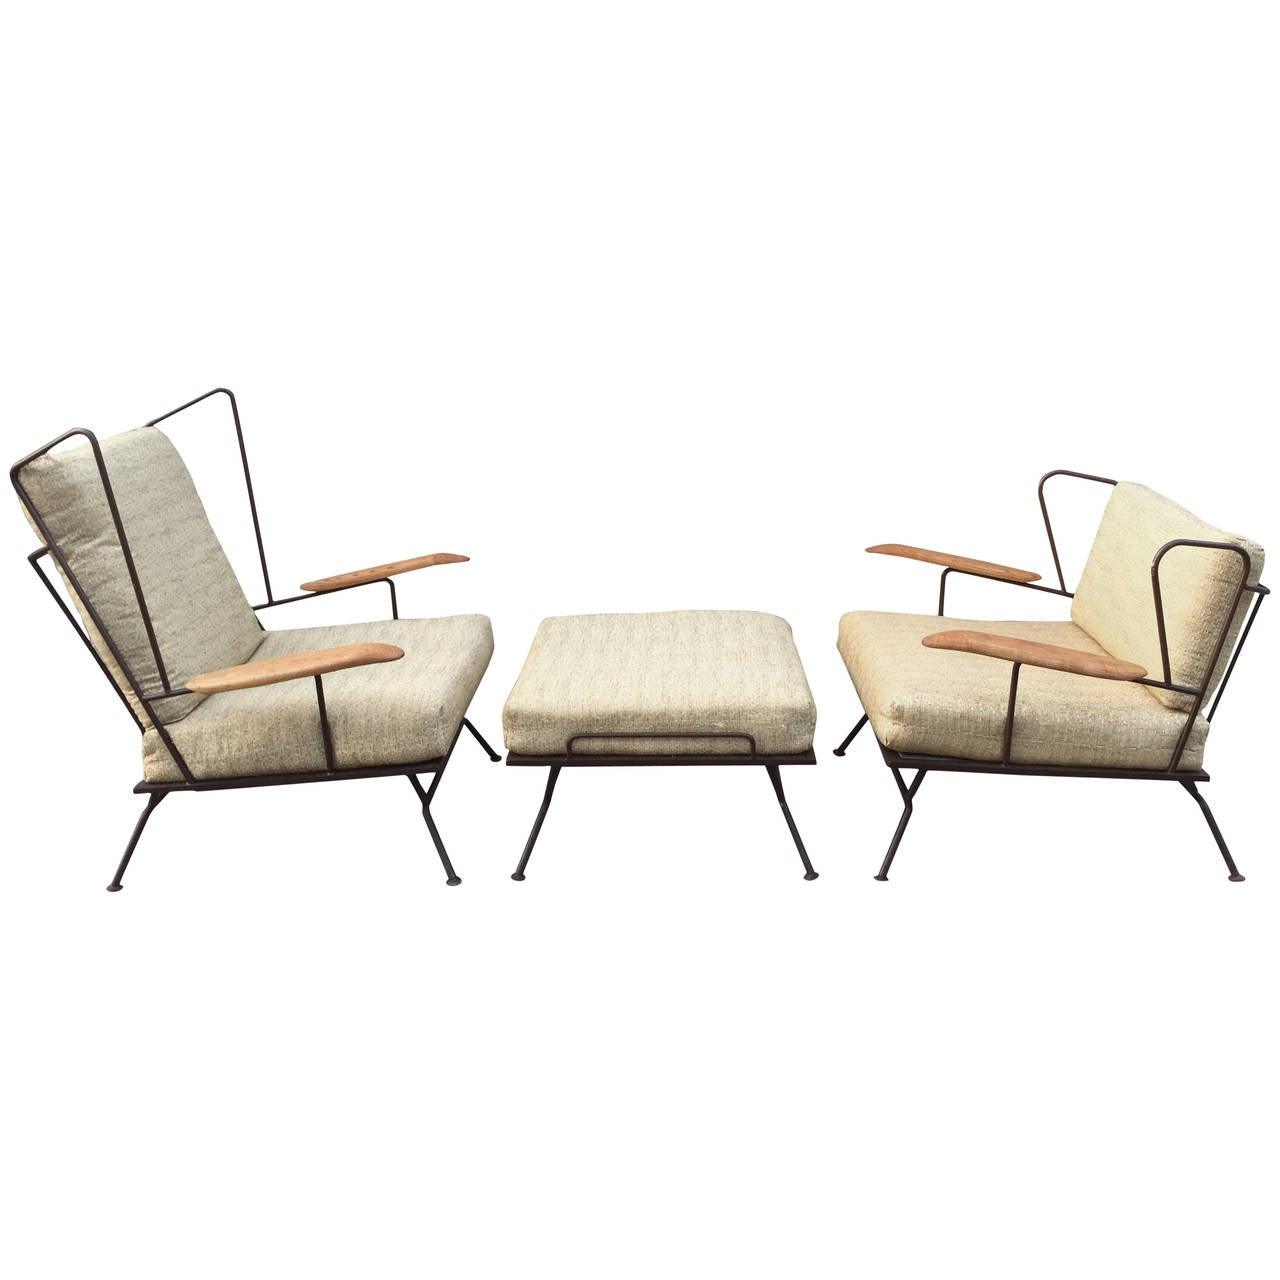 Rare Set of Loose Cushion Modernist Iron Lounge Chairs at 1stdibs